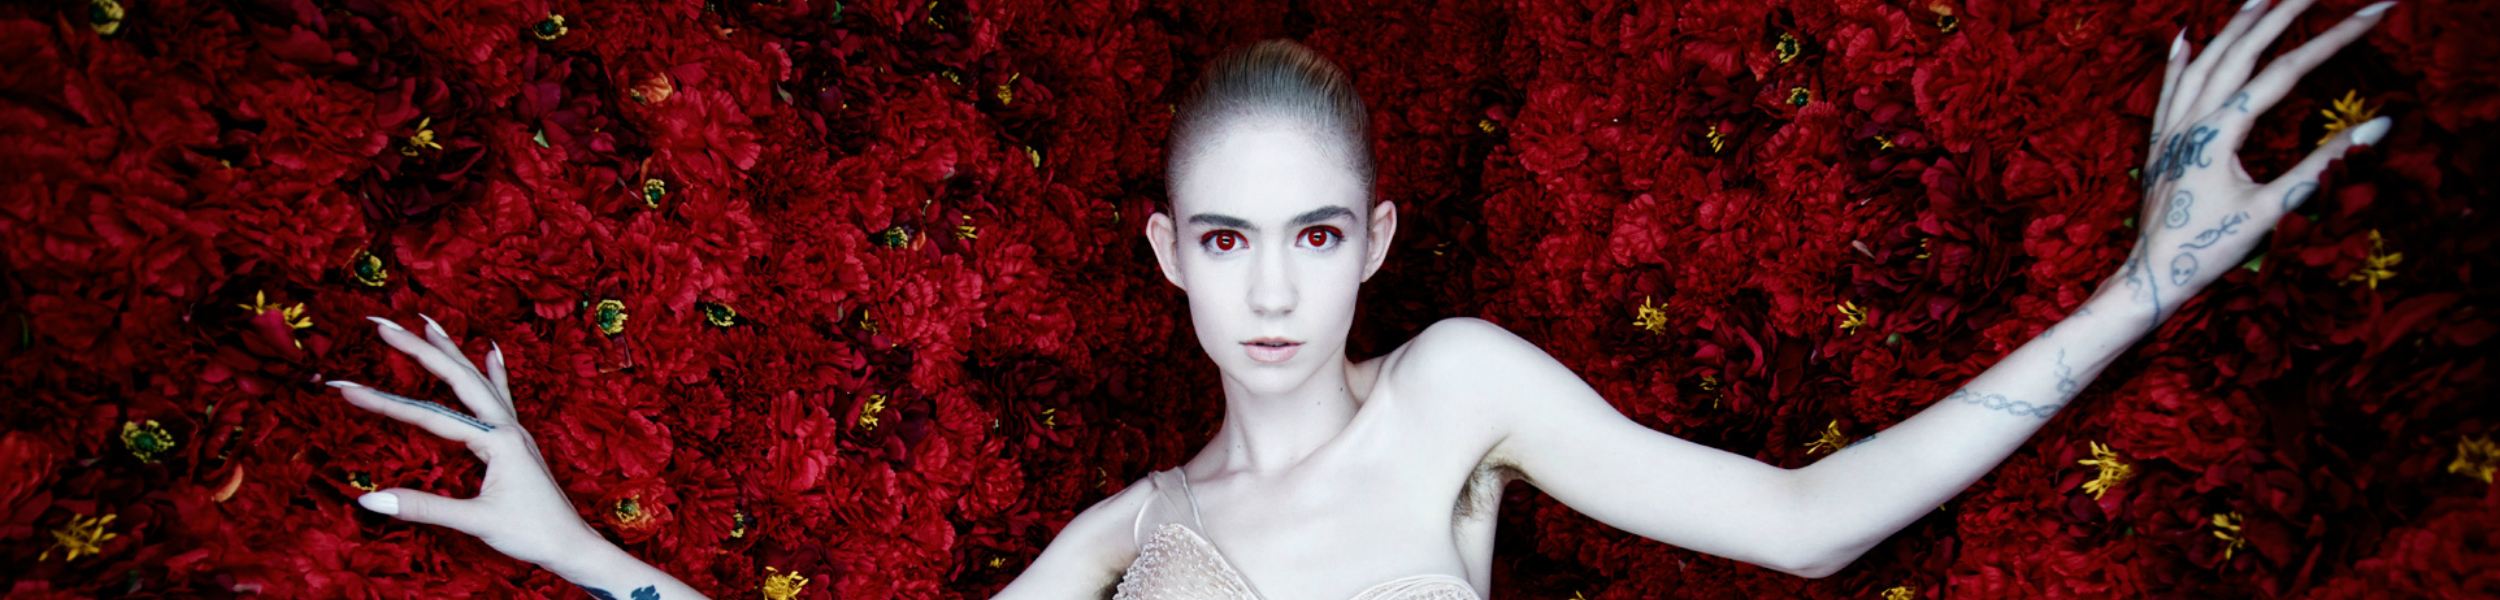 Grimes - Grimes Reveals New Video and Announces New Dates